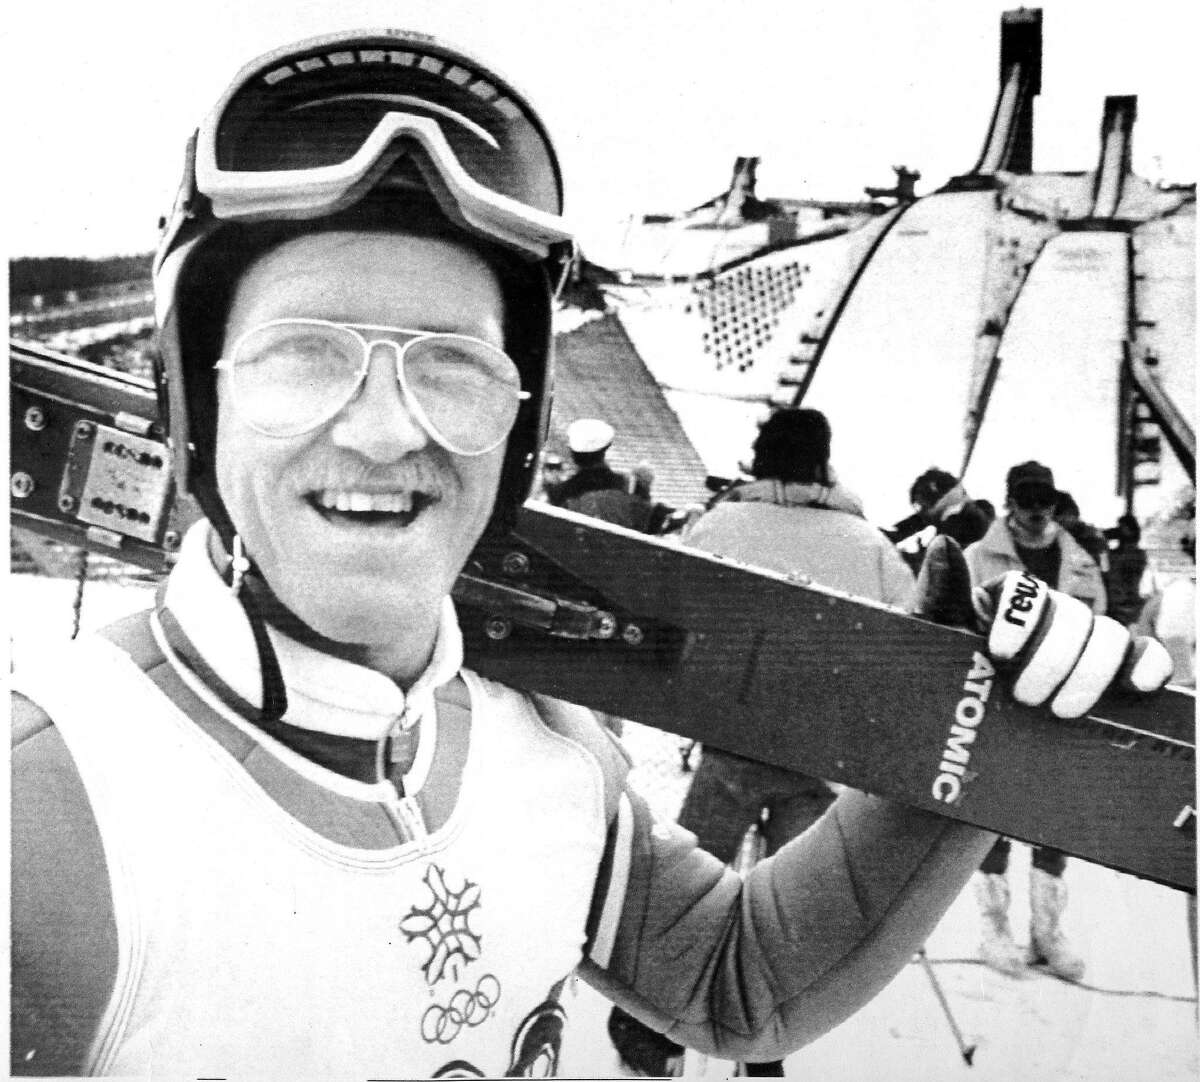 Eddie Edwards known as Eddie the Eagle a Great British ski jumper was a relative novice .. he was given a equipment by other skiers as what he came to Calgary with was substandard UPI PHOTO Photo ran 02/23/1988, p. D3